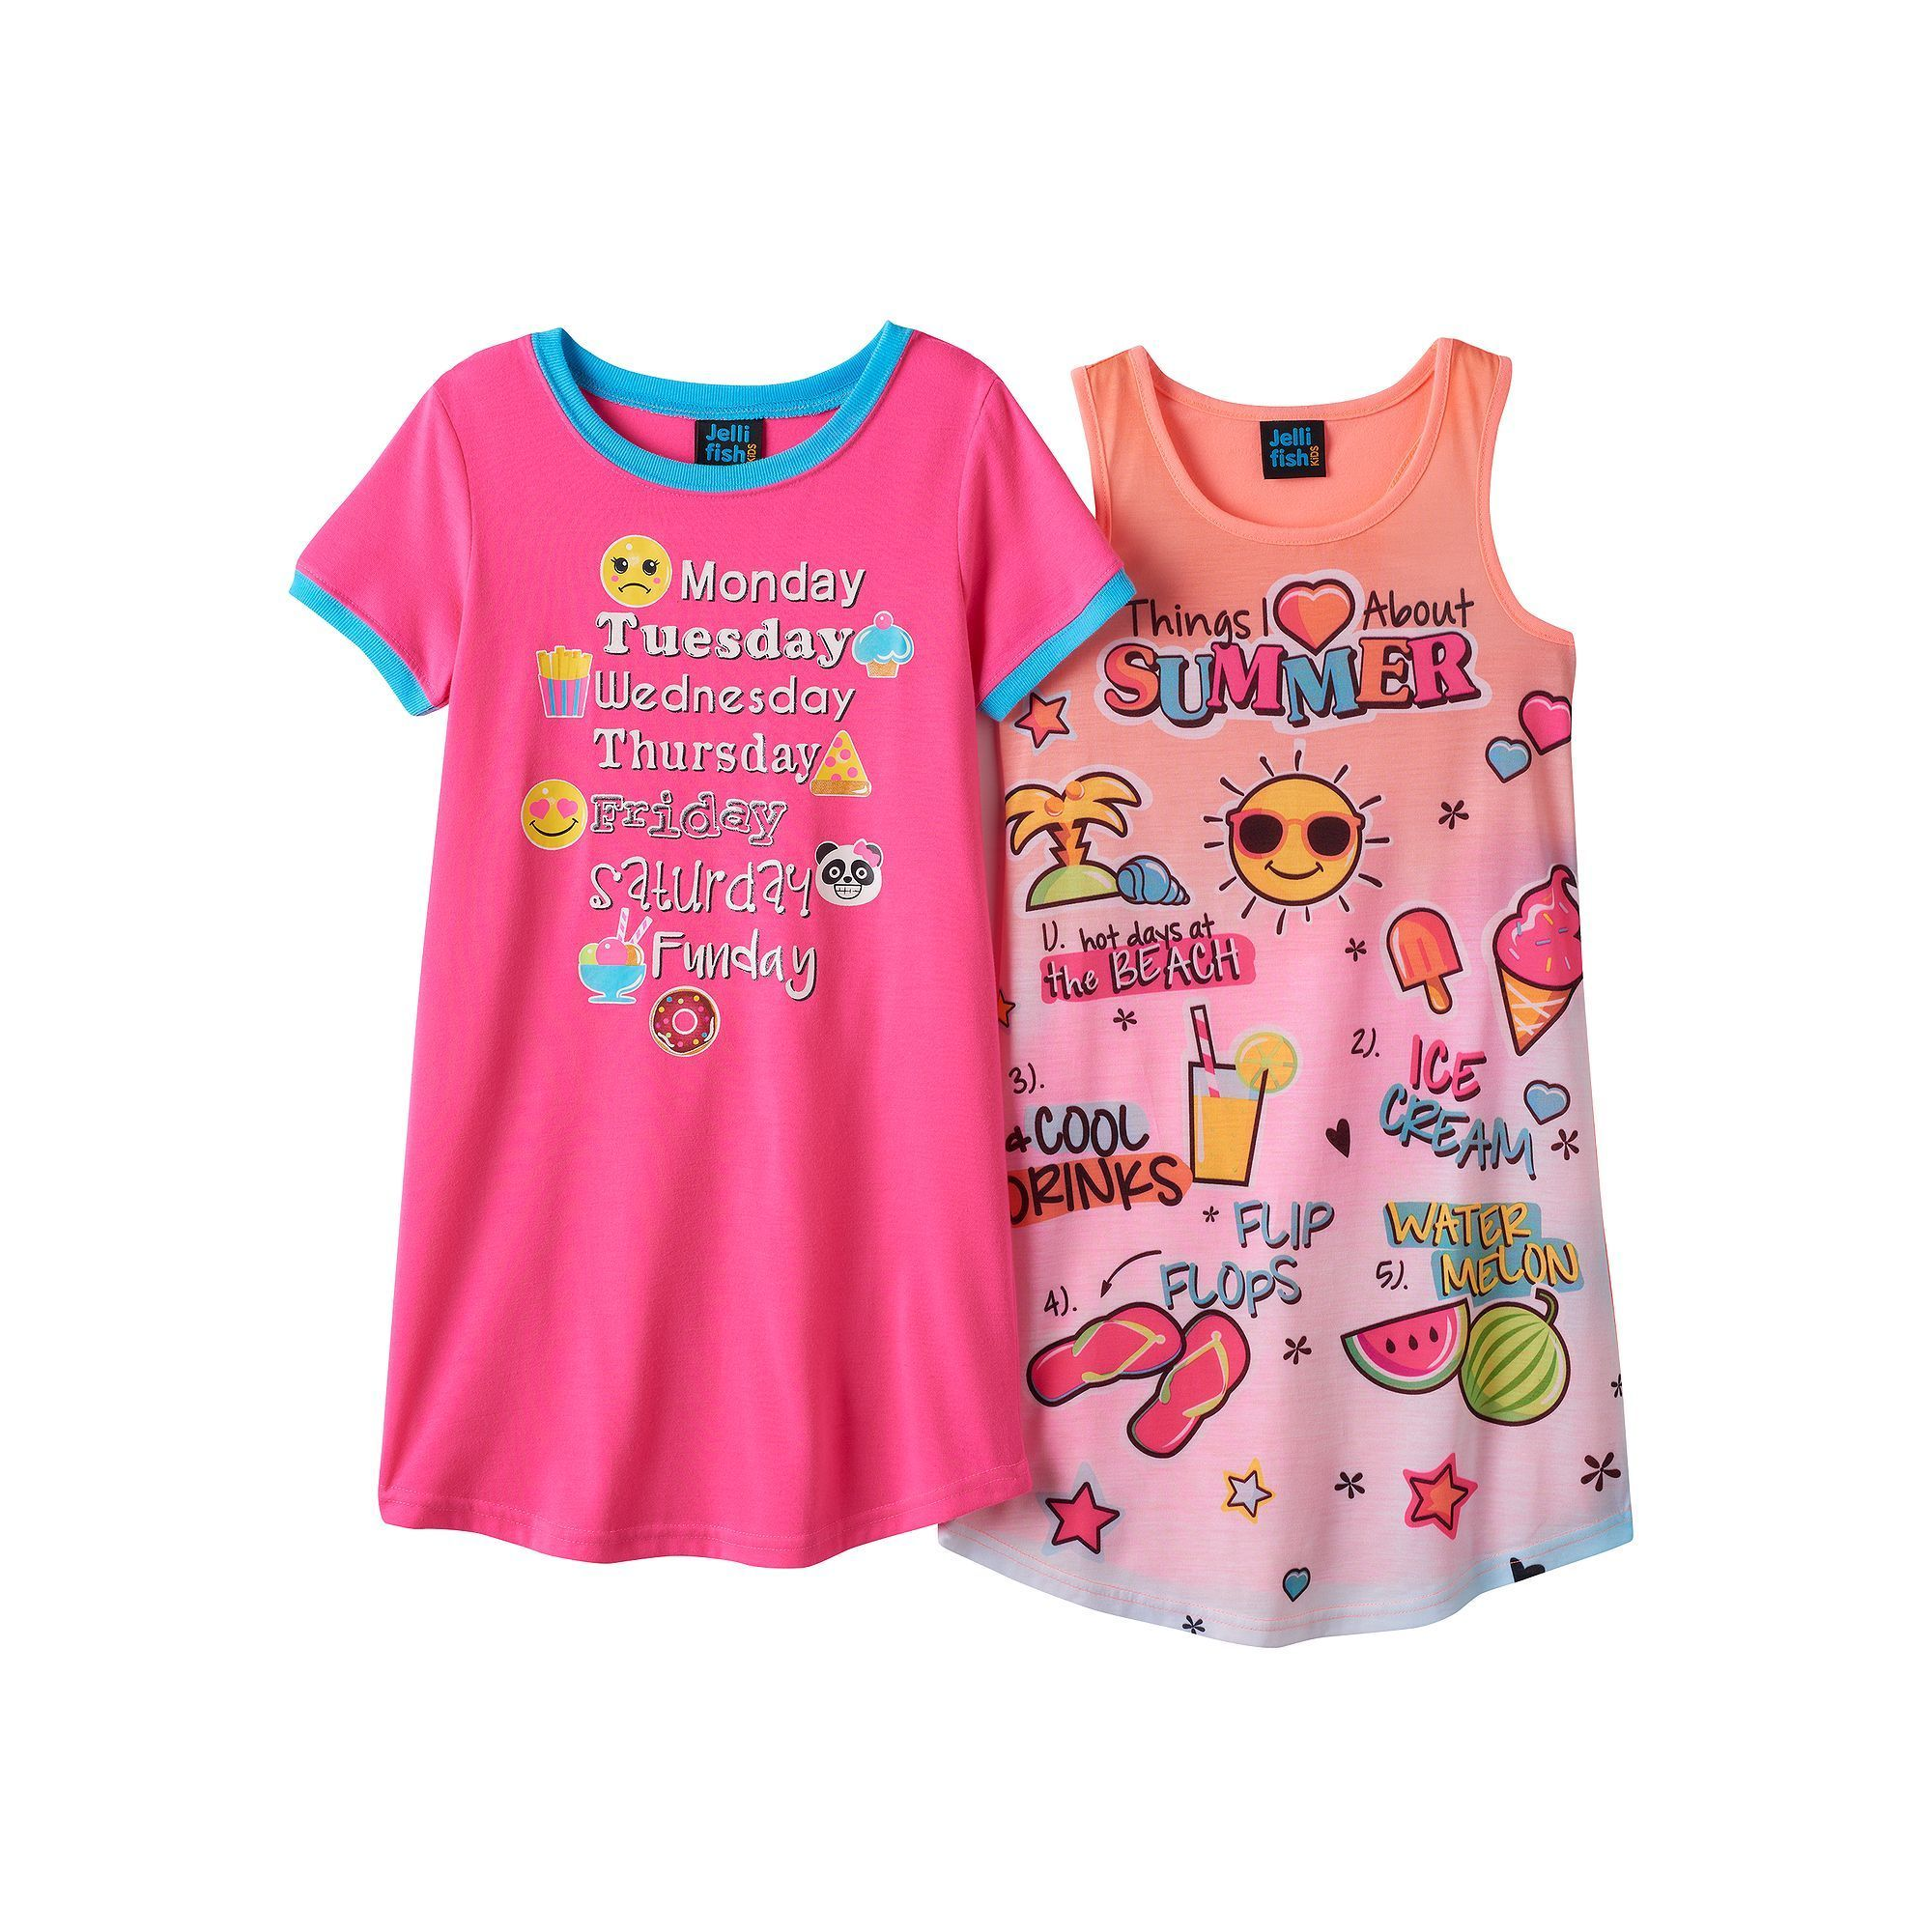 77cc665170 Disney's Fancy Nancy Toddler Girl Short-Sleeve Glittery Graphic Tee by Jumping  Beans® | Products | Toddler girl shorts, Fancy nancy, Short girls